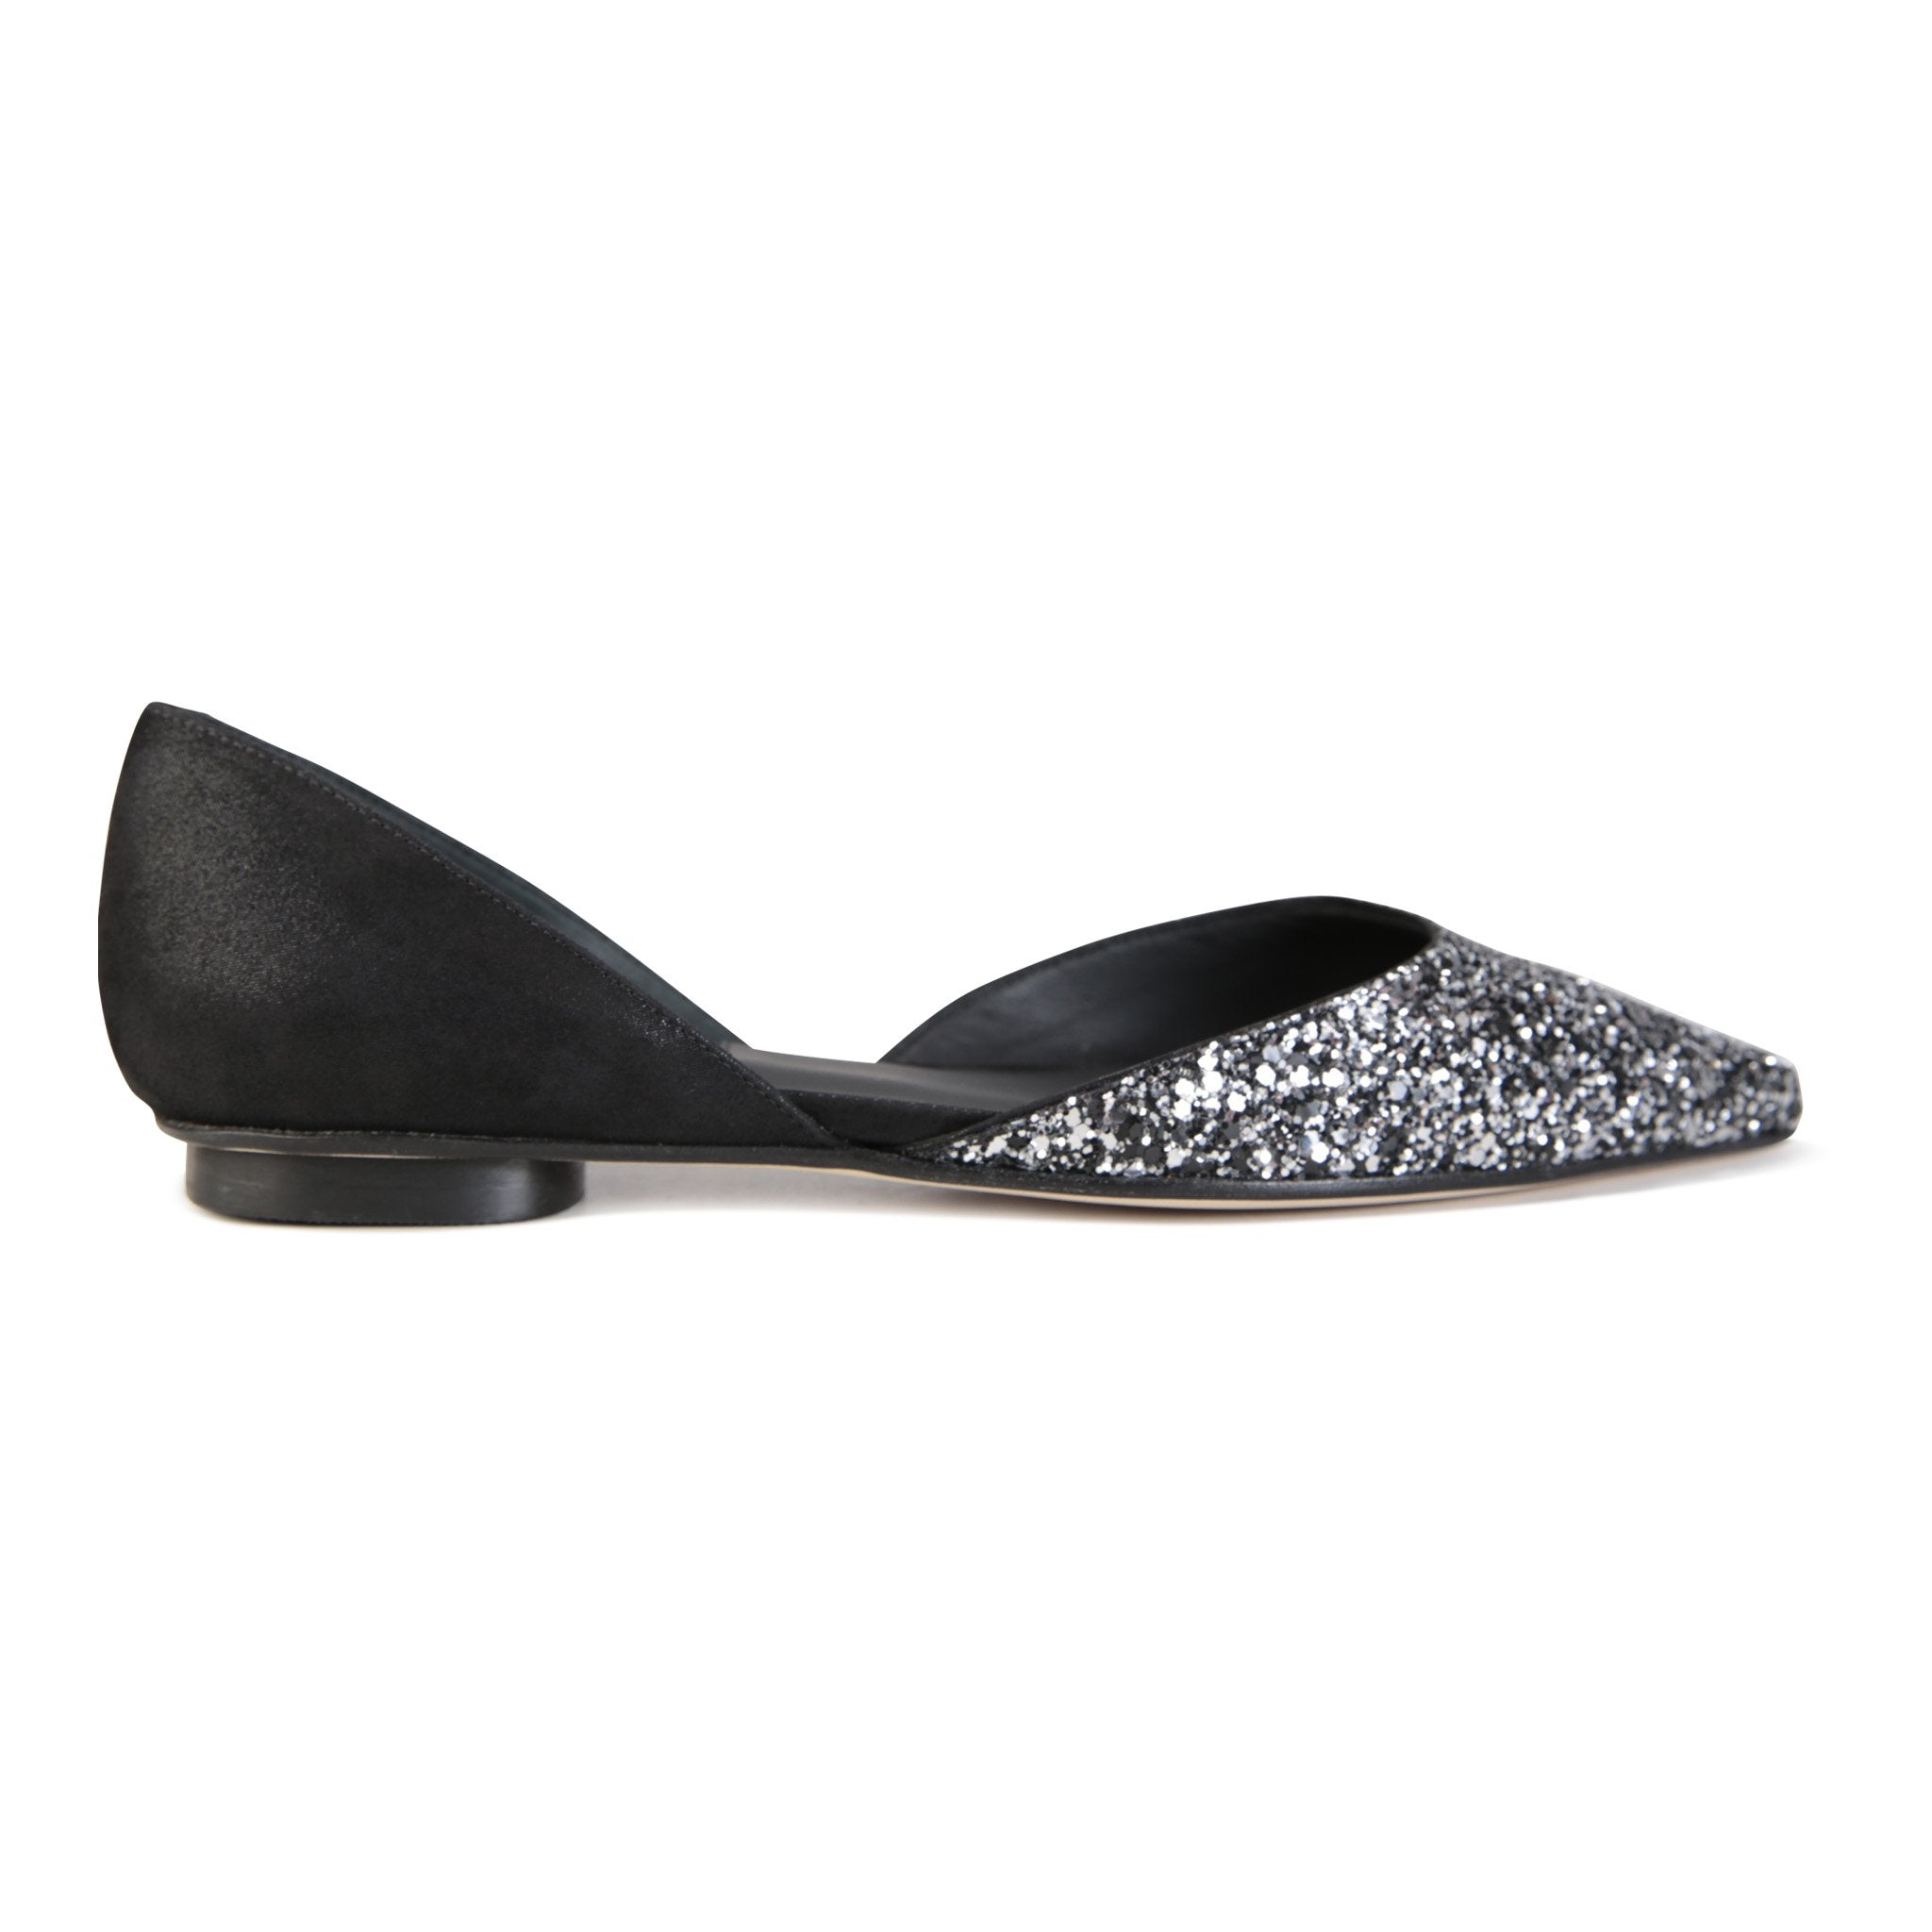 PONZA - Glitter Notte + Hydra Nero, VIAJIYU - Women's Hand Made Sustainable Luxury Shoes. Made in Italy. Made to Order.